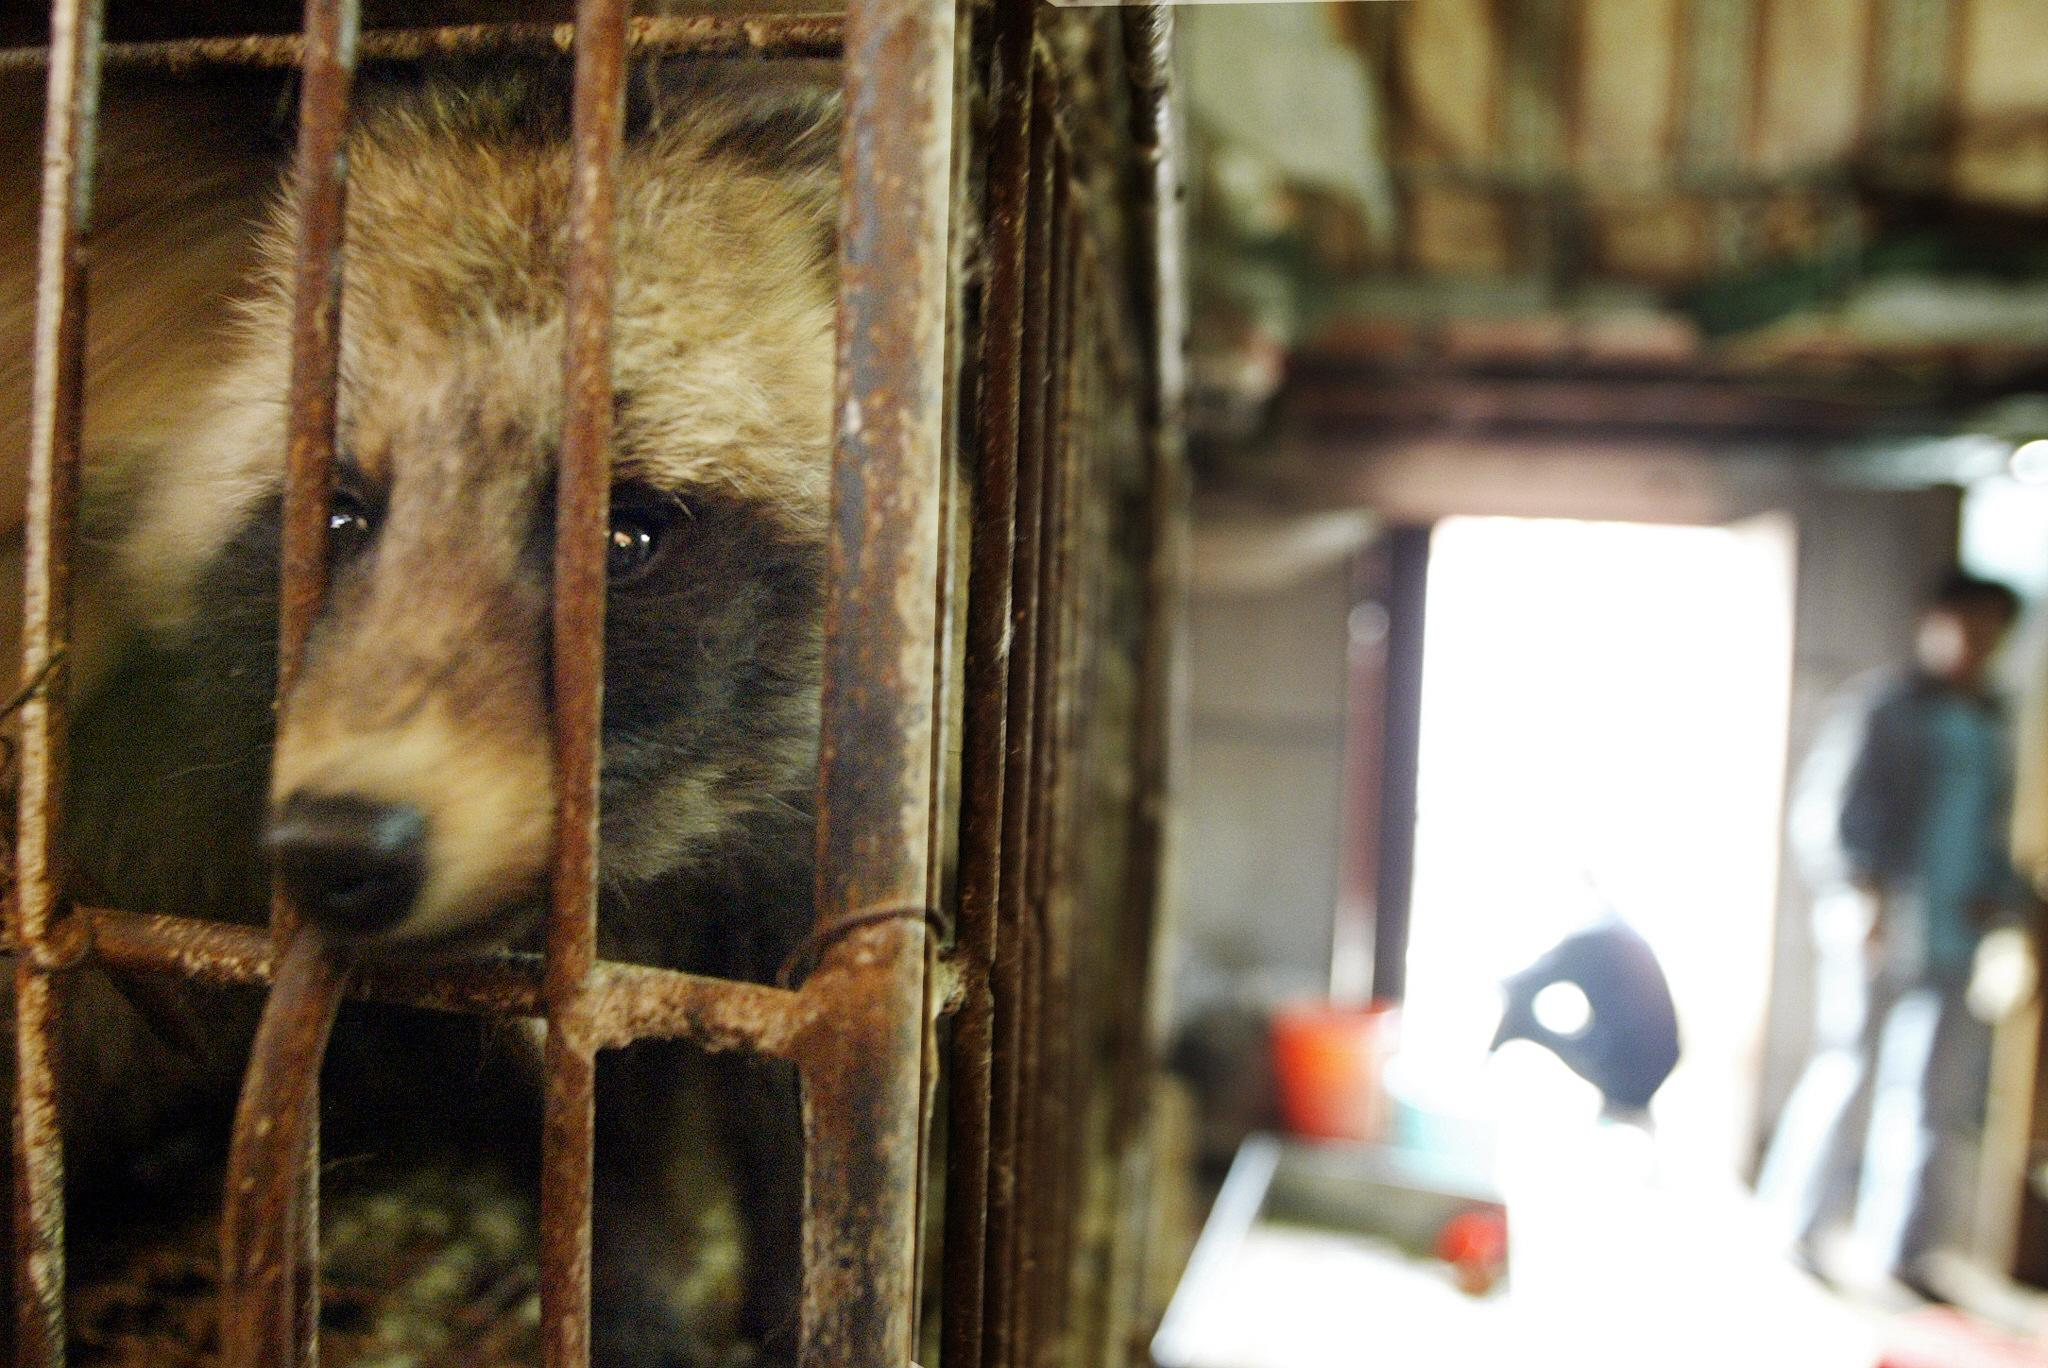 A raccoon dog destined for the dinner table looks out of its cage in Xin Yuan wild animal market in the southern Chinese city of Guangzhou, 06 January 2004. (Photo by PETER PARKS/AFP via Getty Images)